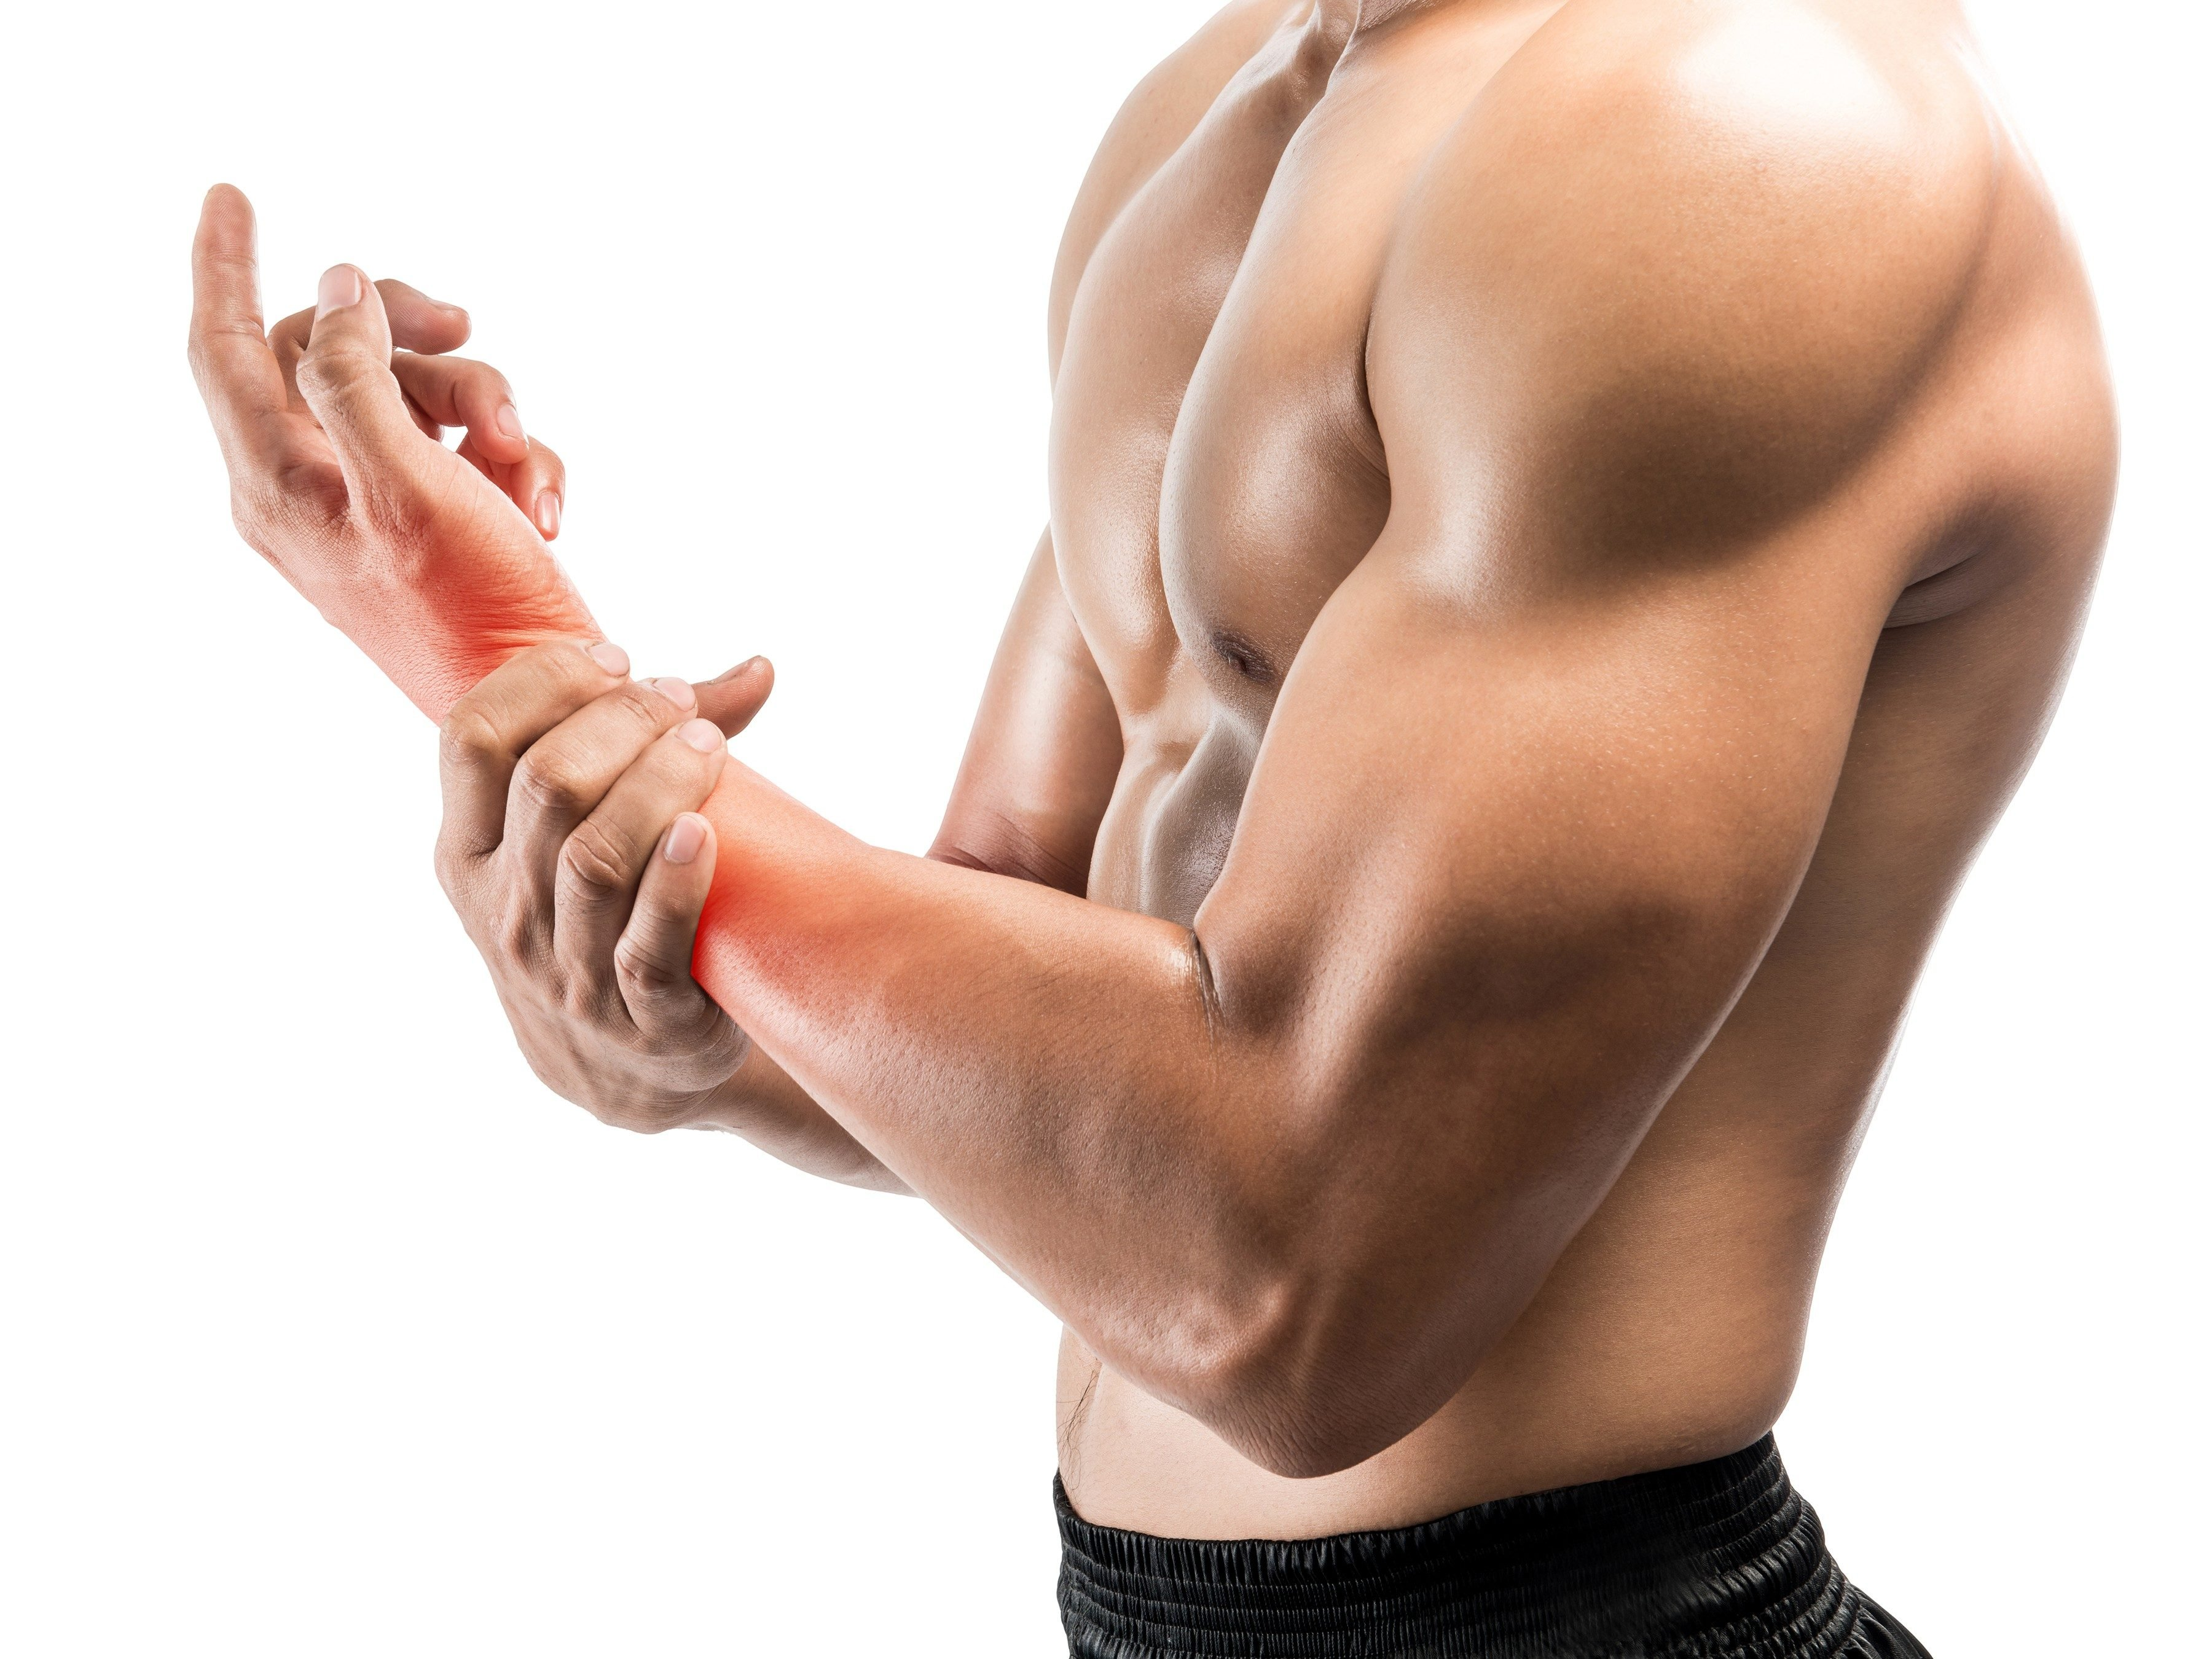 10 Things You Can Do To Heal Sore Muscles